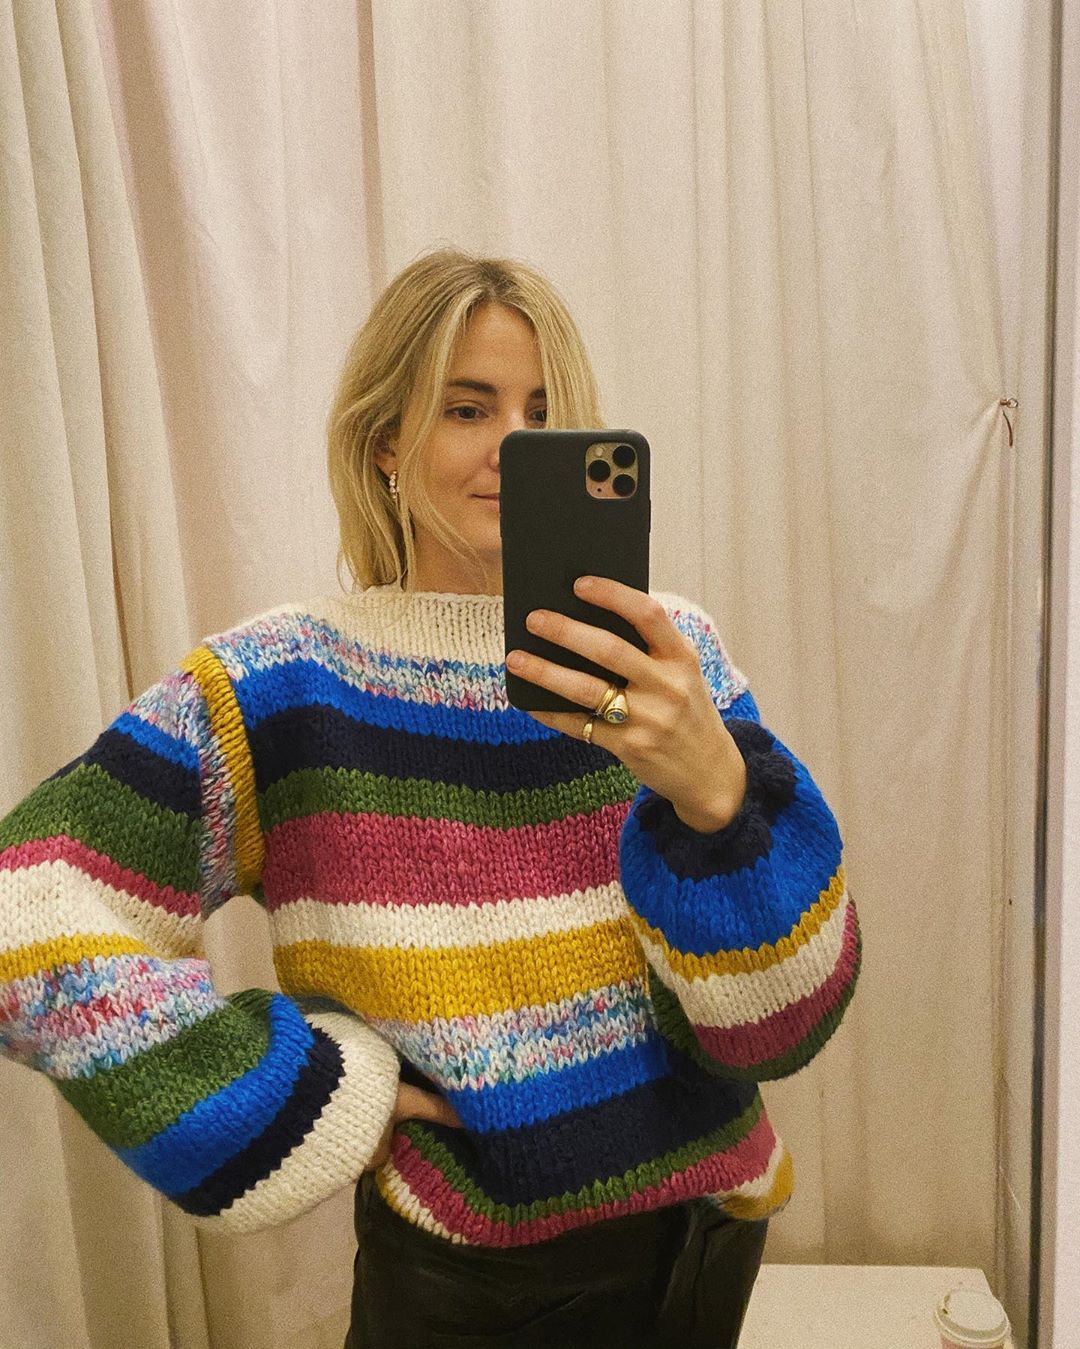 10 Colorful Sweaters to Brighten Your Mood While Working From Home